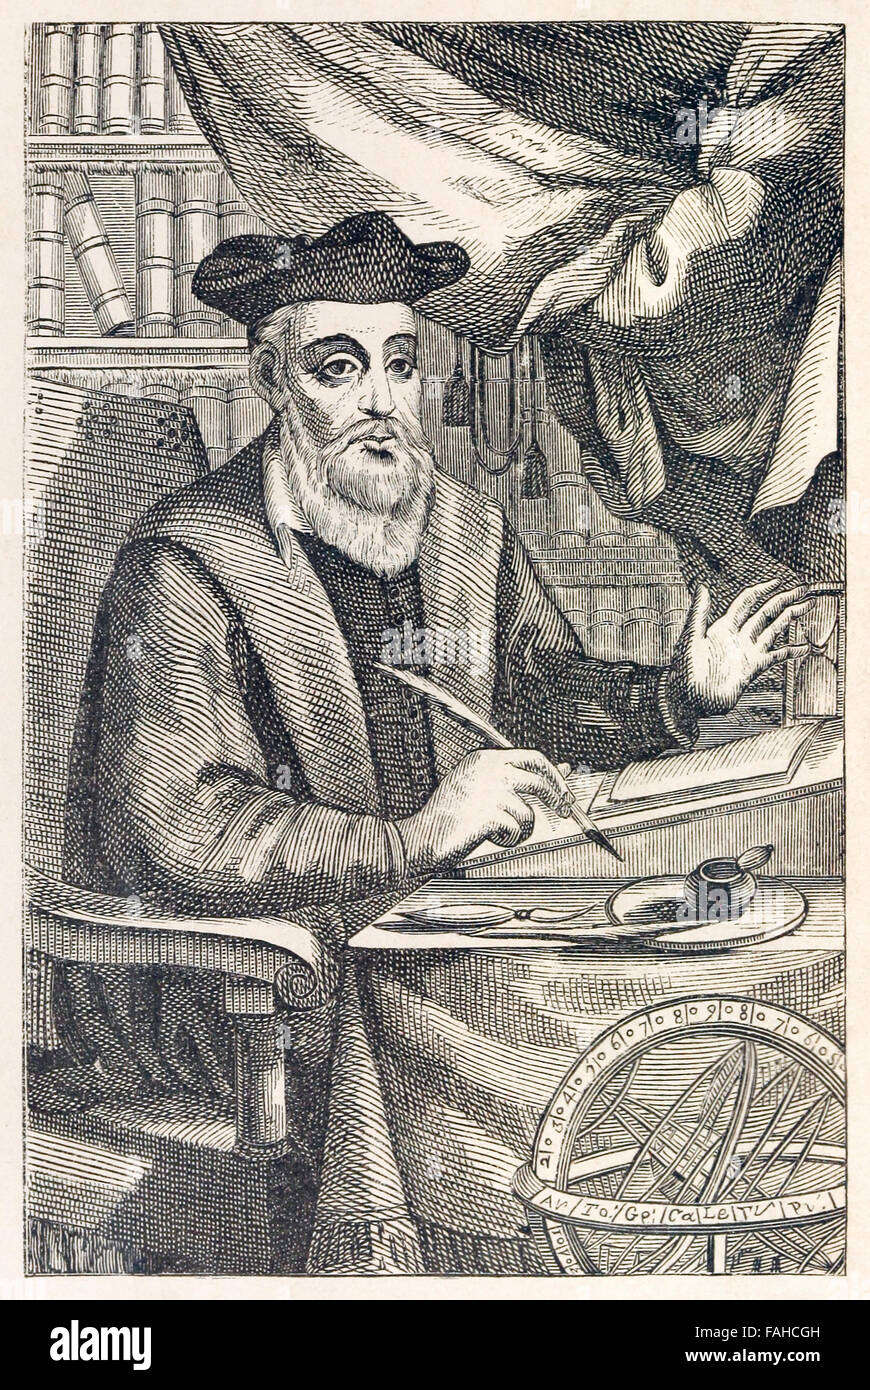 nostradamus predictions essay Title length color rating : believers and skeptics of nostradamus prophecies - a prophet a magician god many people become confused when the topic of nostradamus.